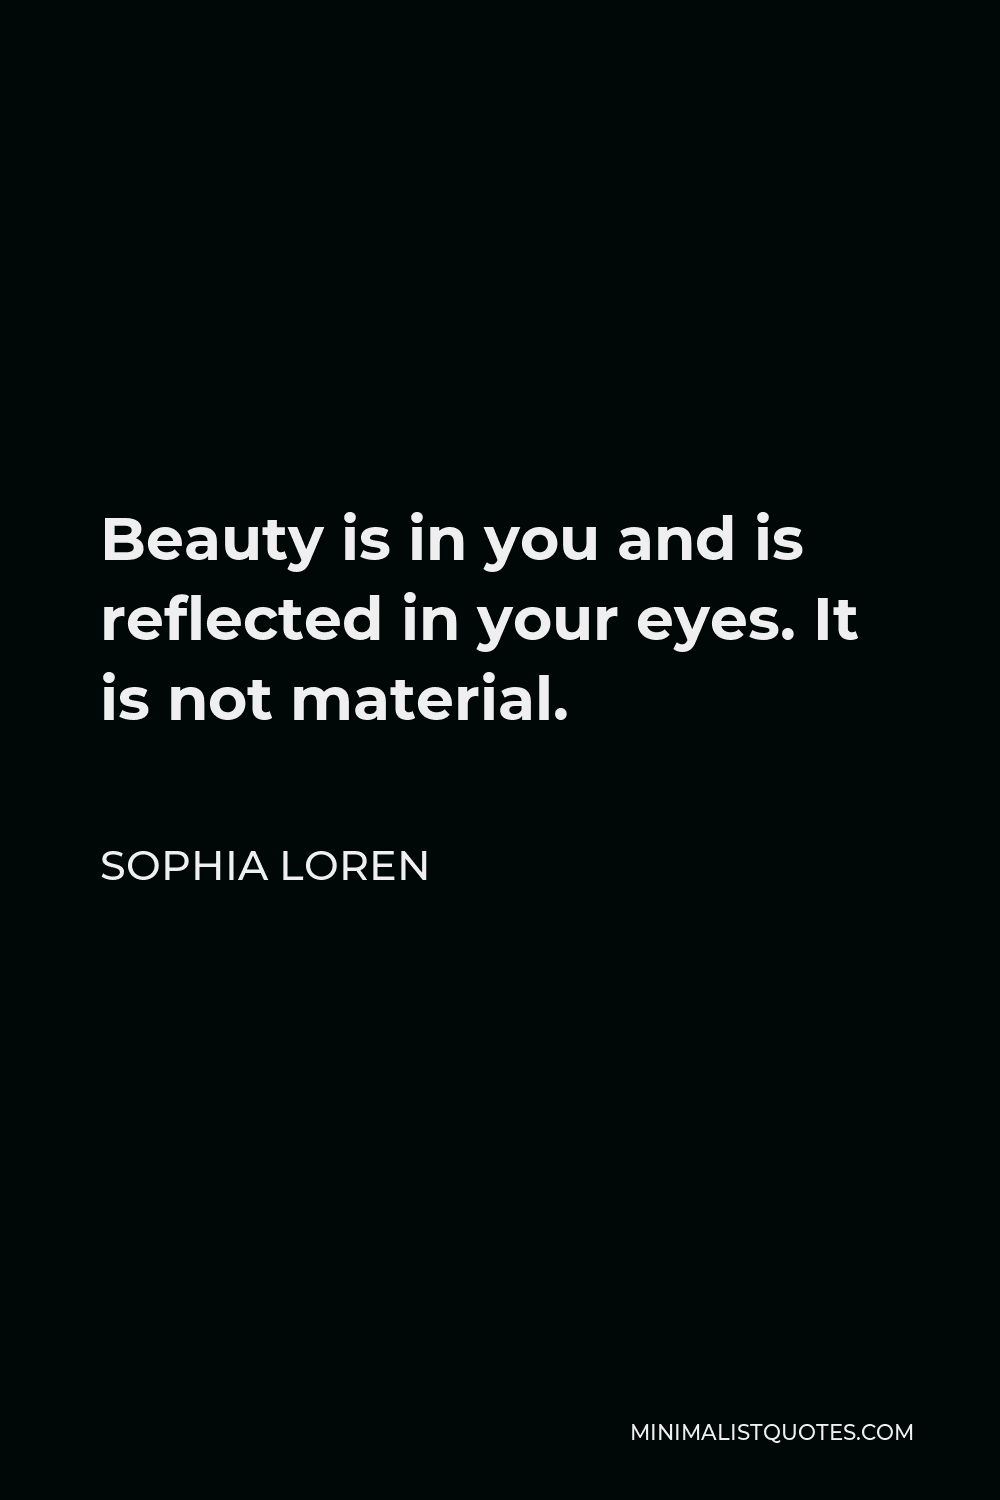 Sophia Loren Quote - Beauty is in you and is reflected in your eyes. It is not material.